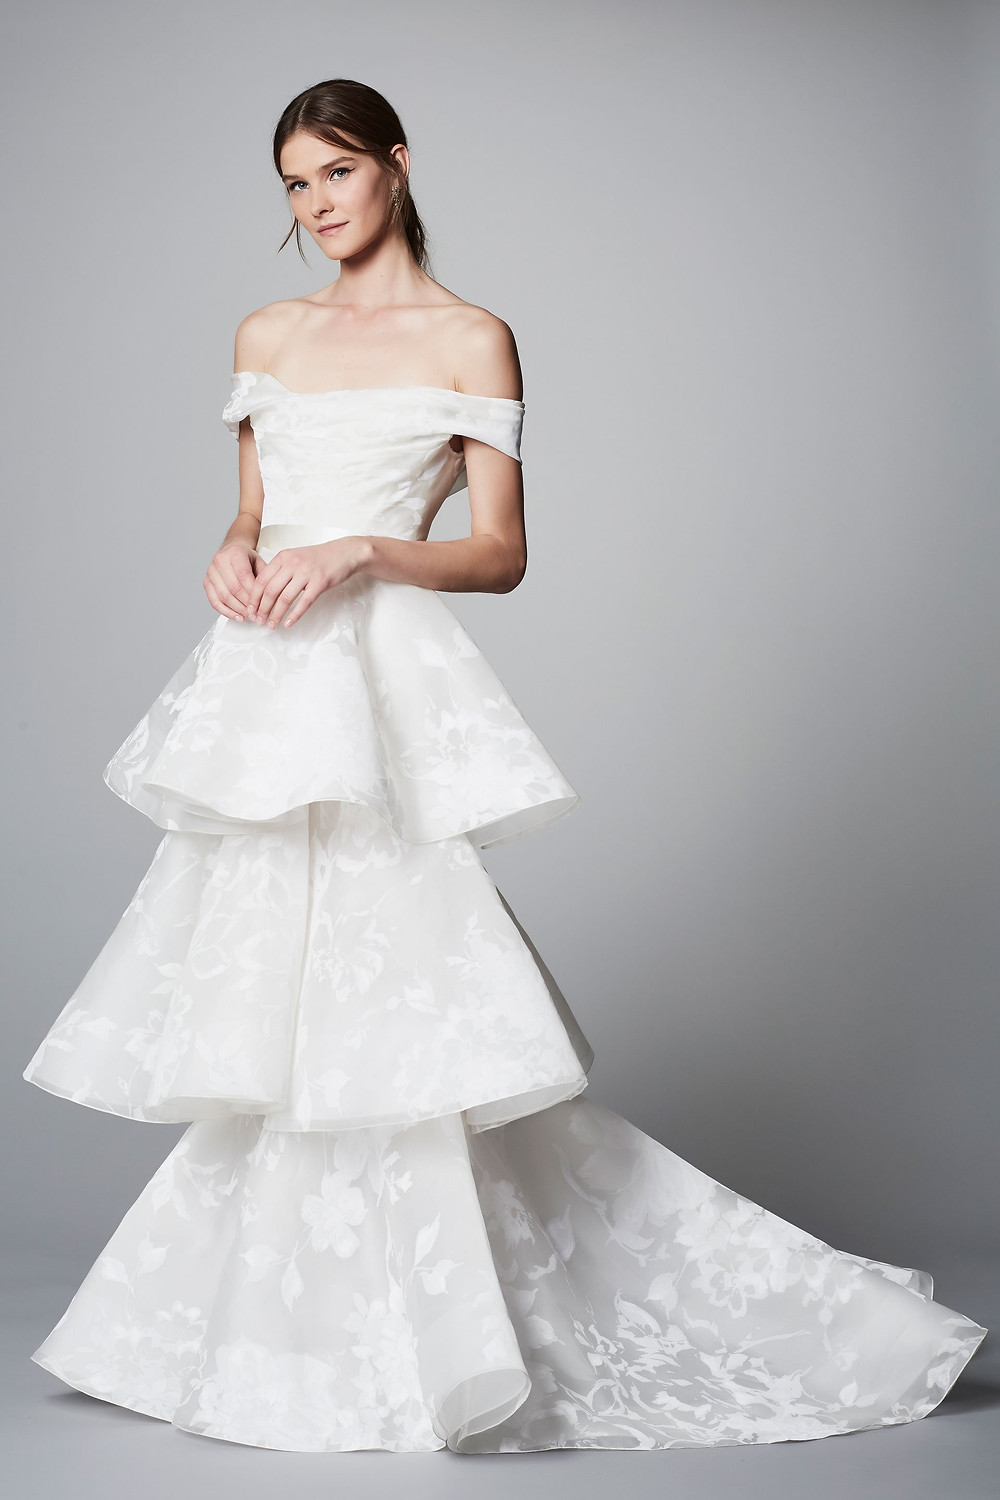 A Marchesa off the shoulder A-line wedding dress with a layered skirt